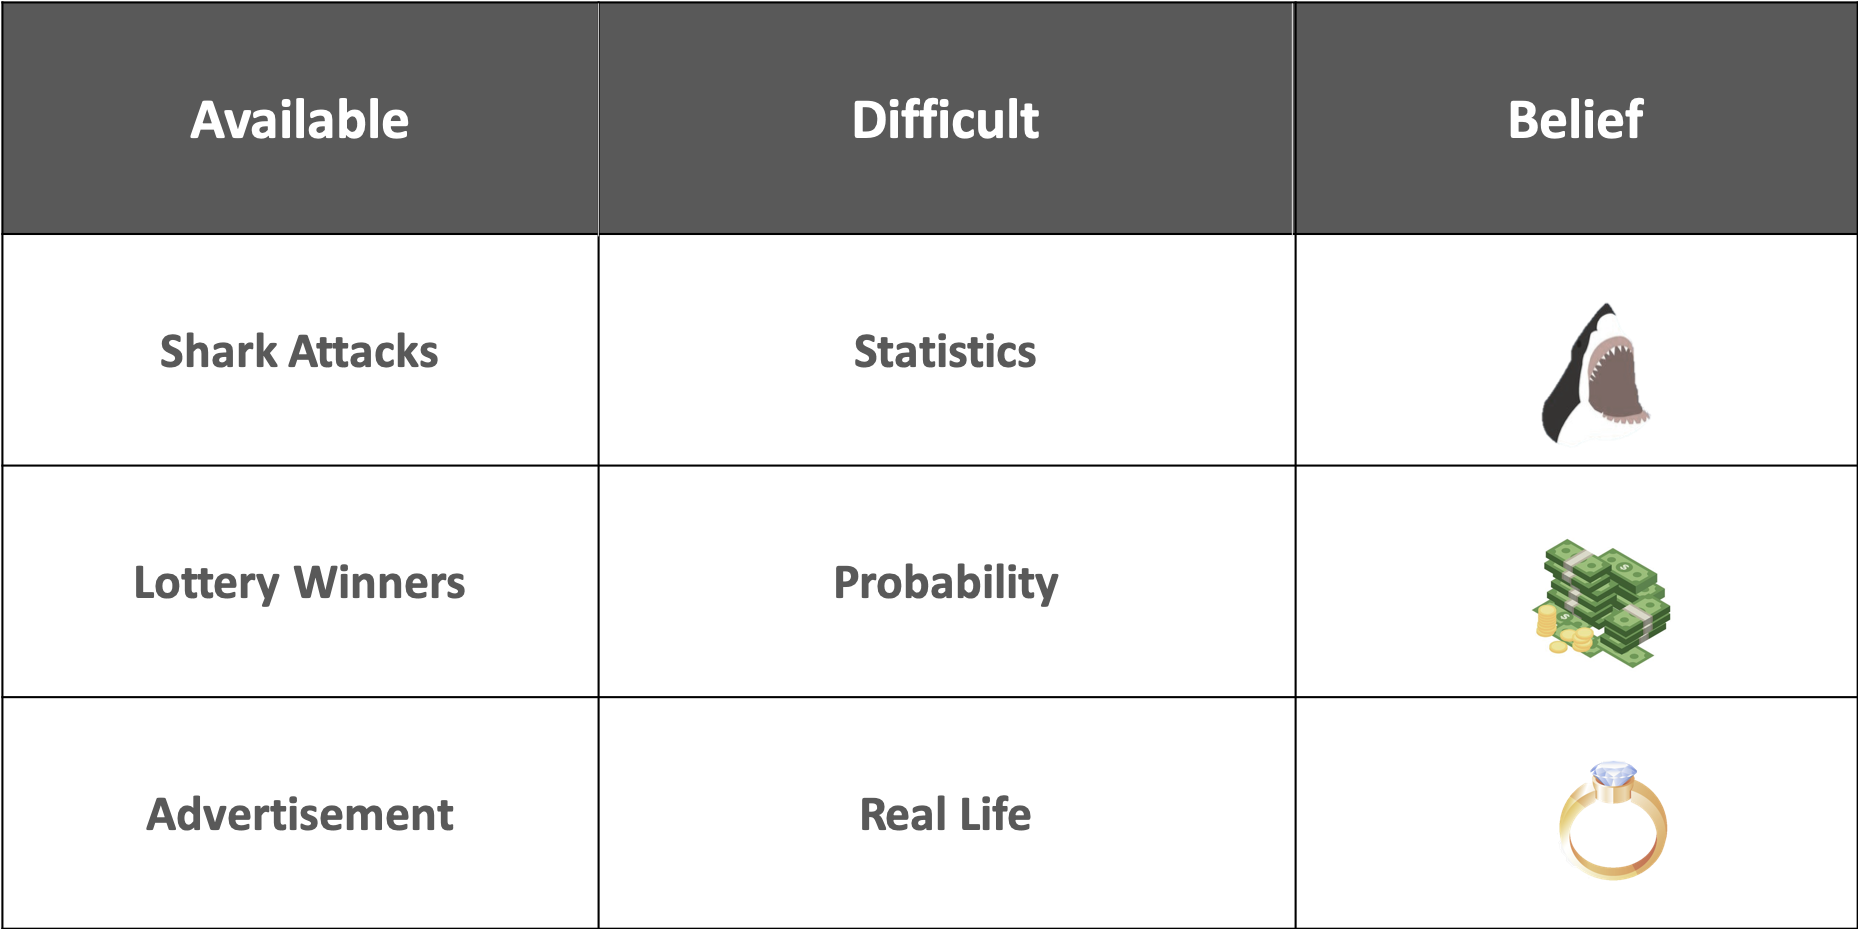 availability bias examples